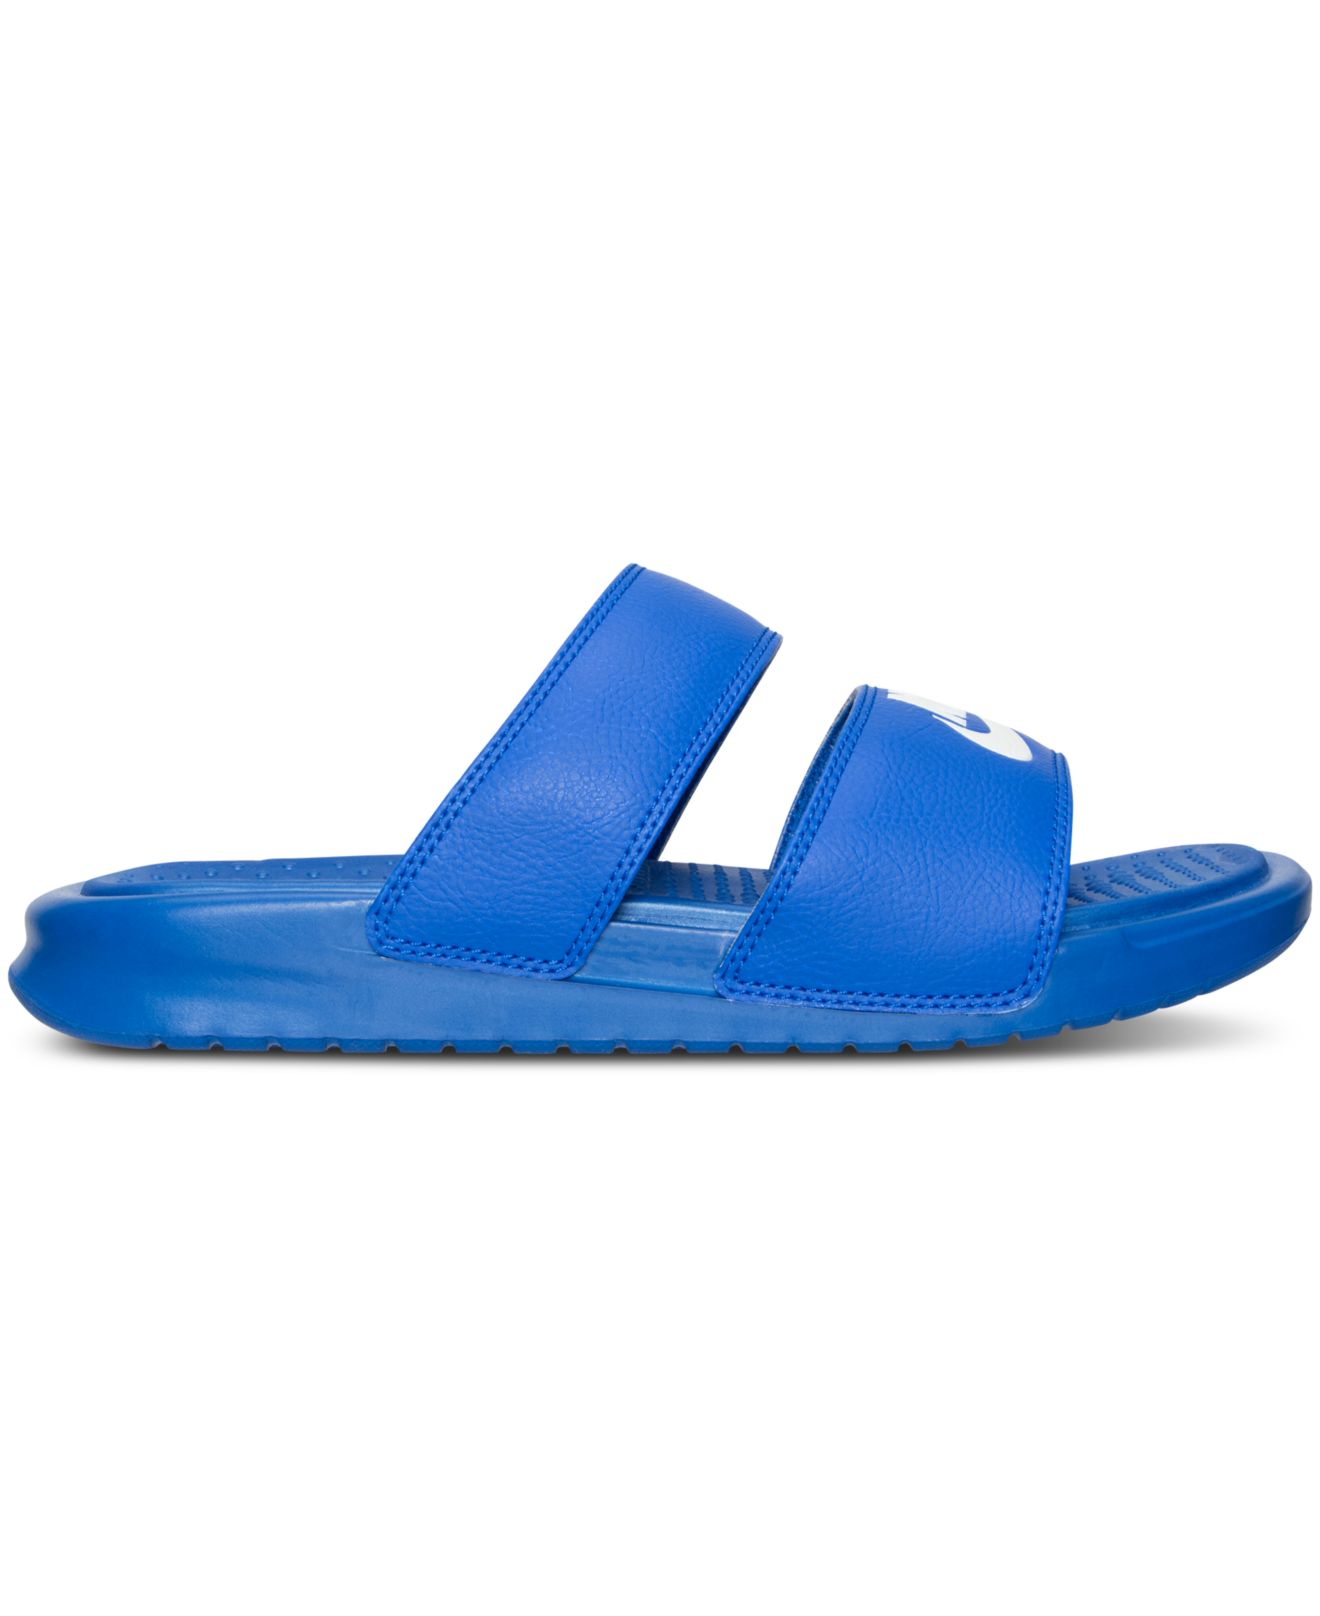 separation shoes 50ad0 bd6e3 ... hot lyst nike womens benassi duo ultra slide sandals from finish line  23e9a b1dbc